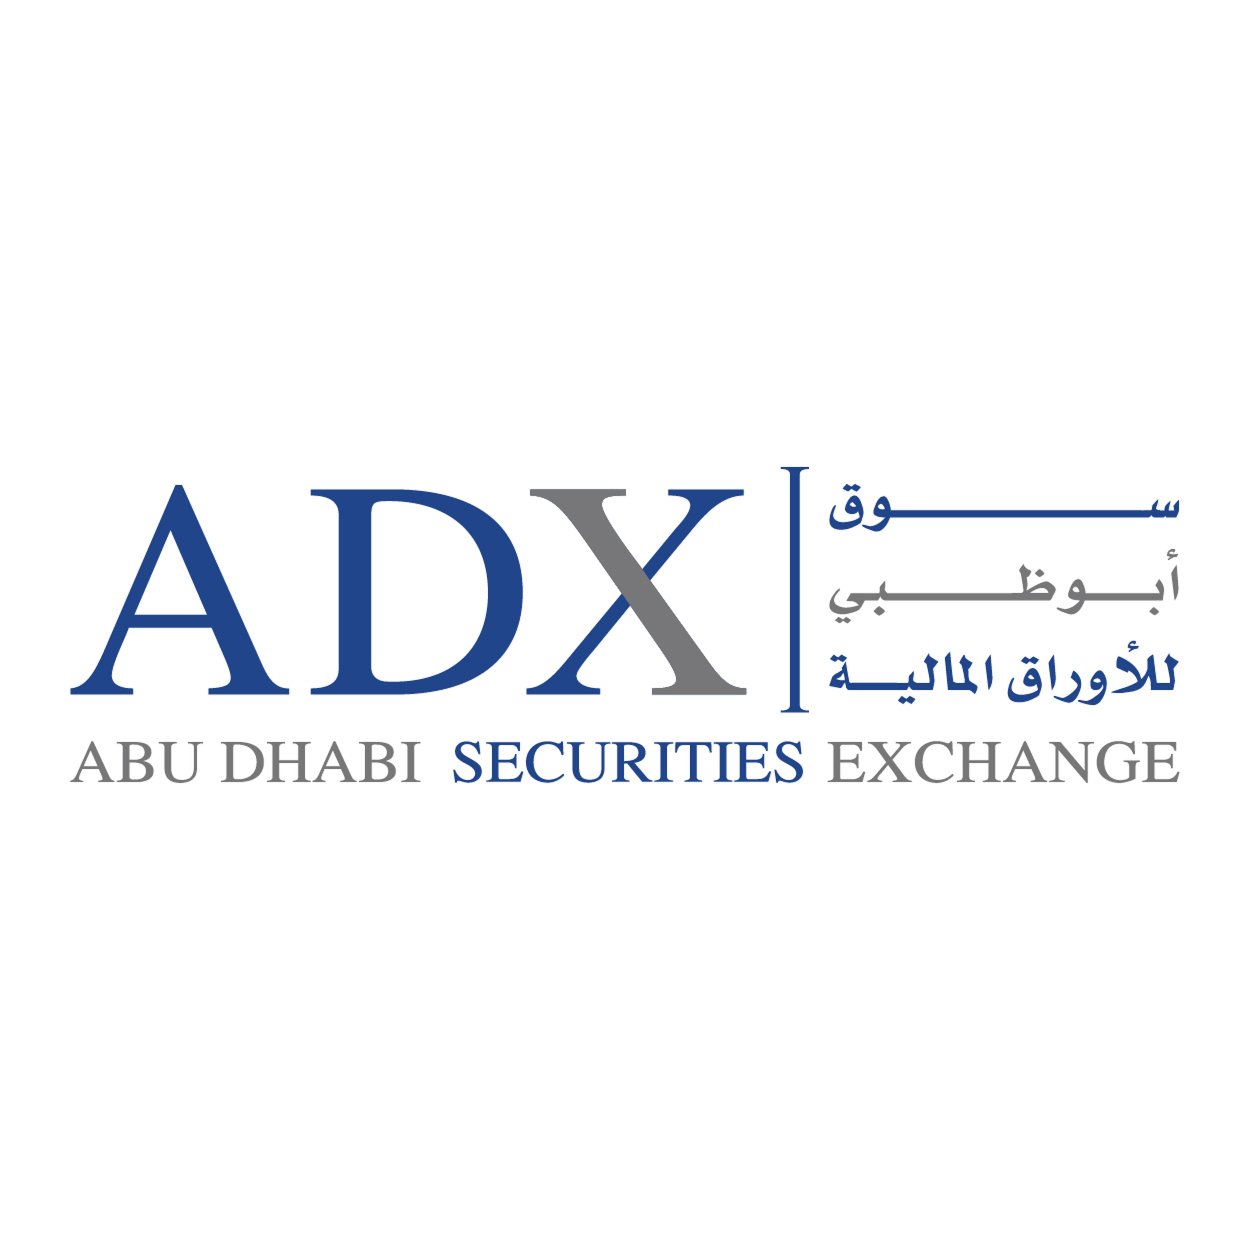 Abu Dhabi Securities Exchange